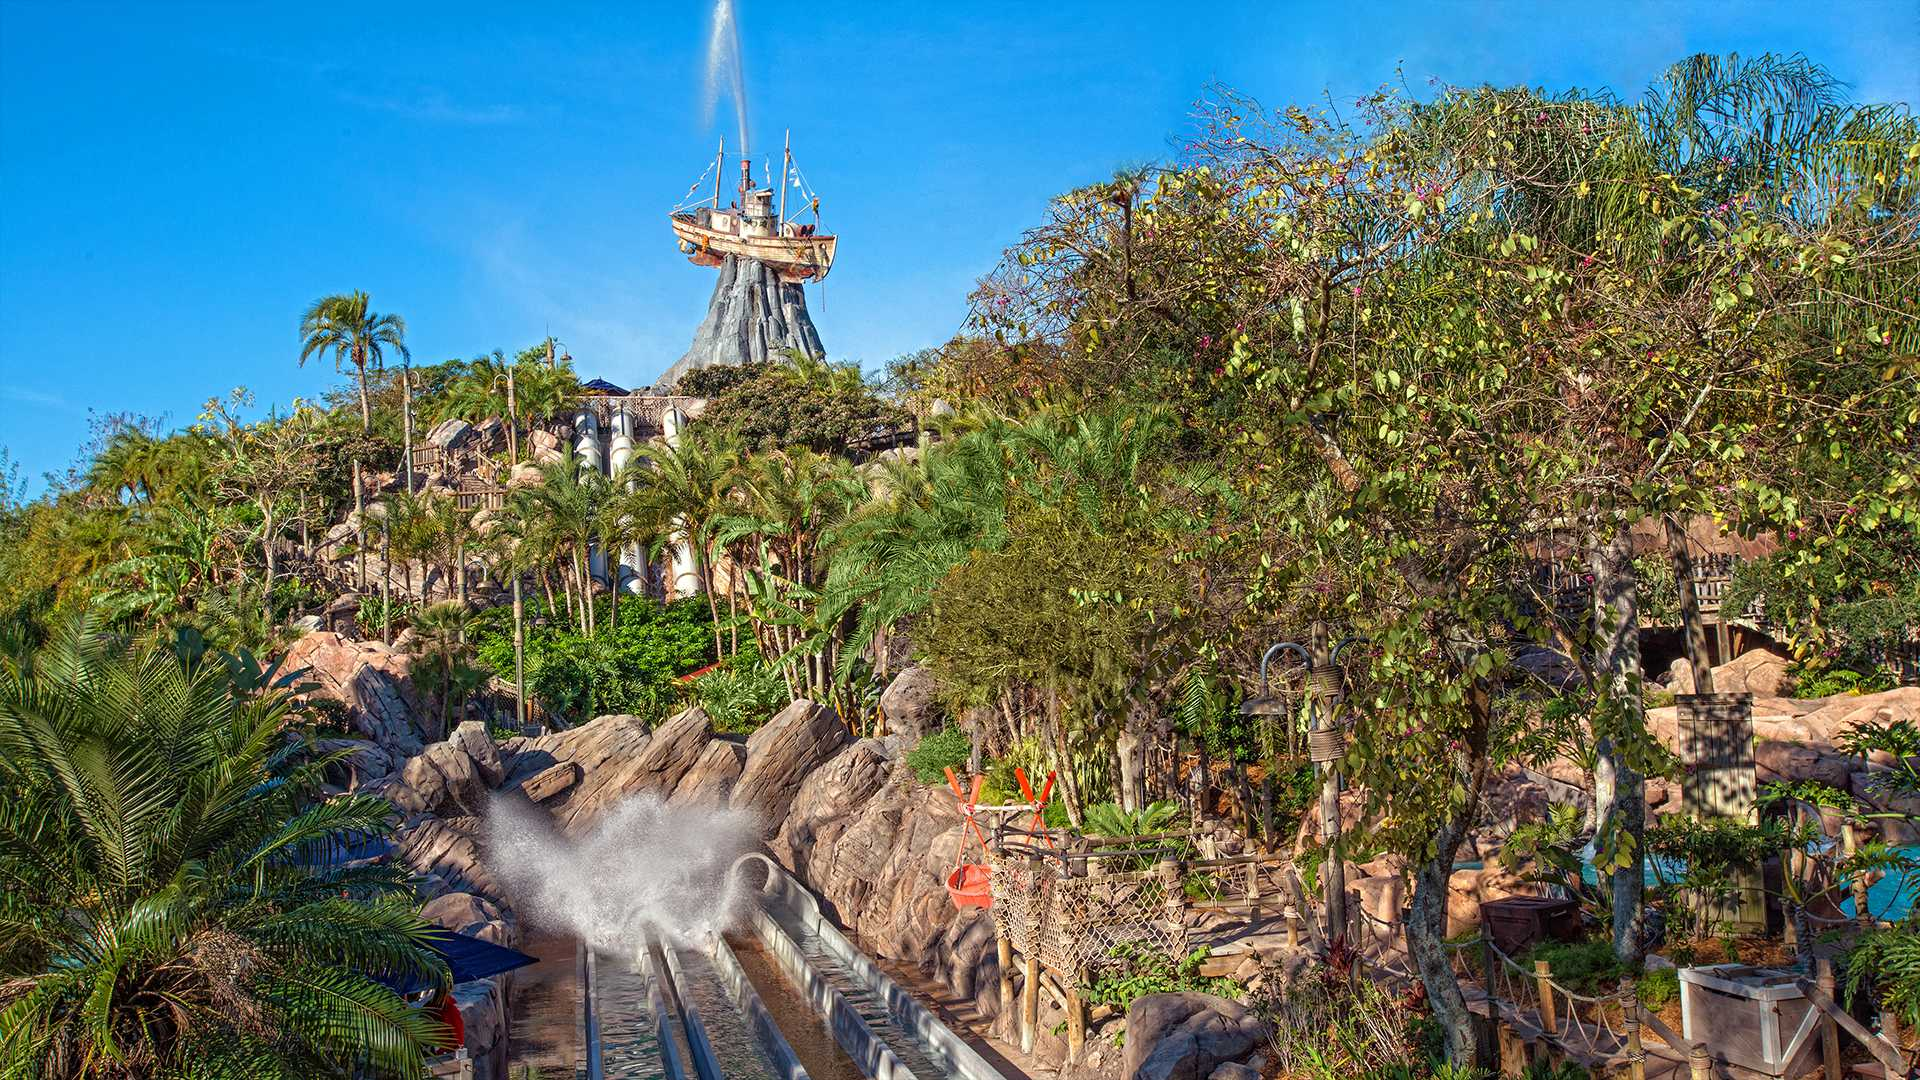 We're excited to announce several new combo tickets for the major southern California theme parks including Disneyland Resort, Universal Studios, Knott's Berry Farm and more!